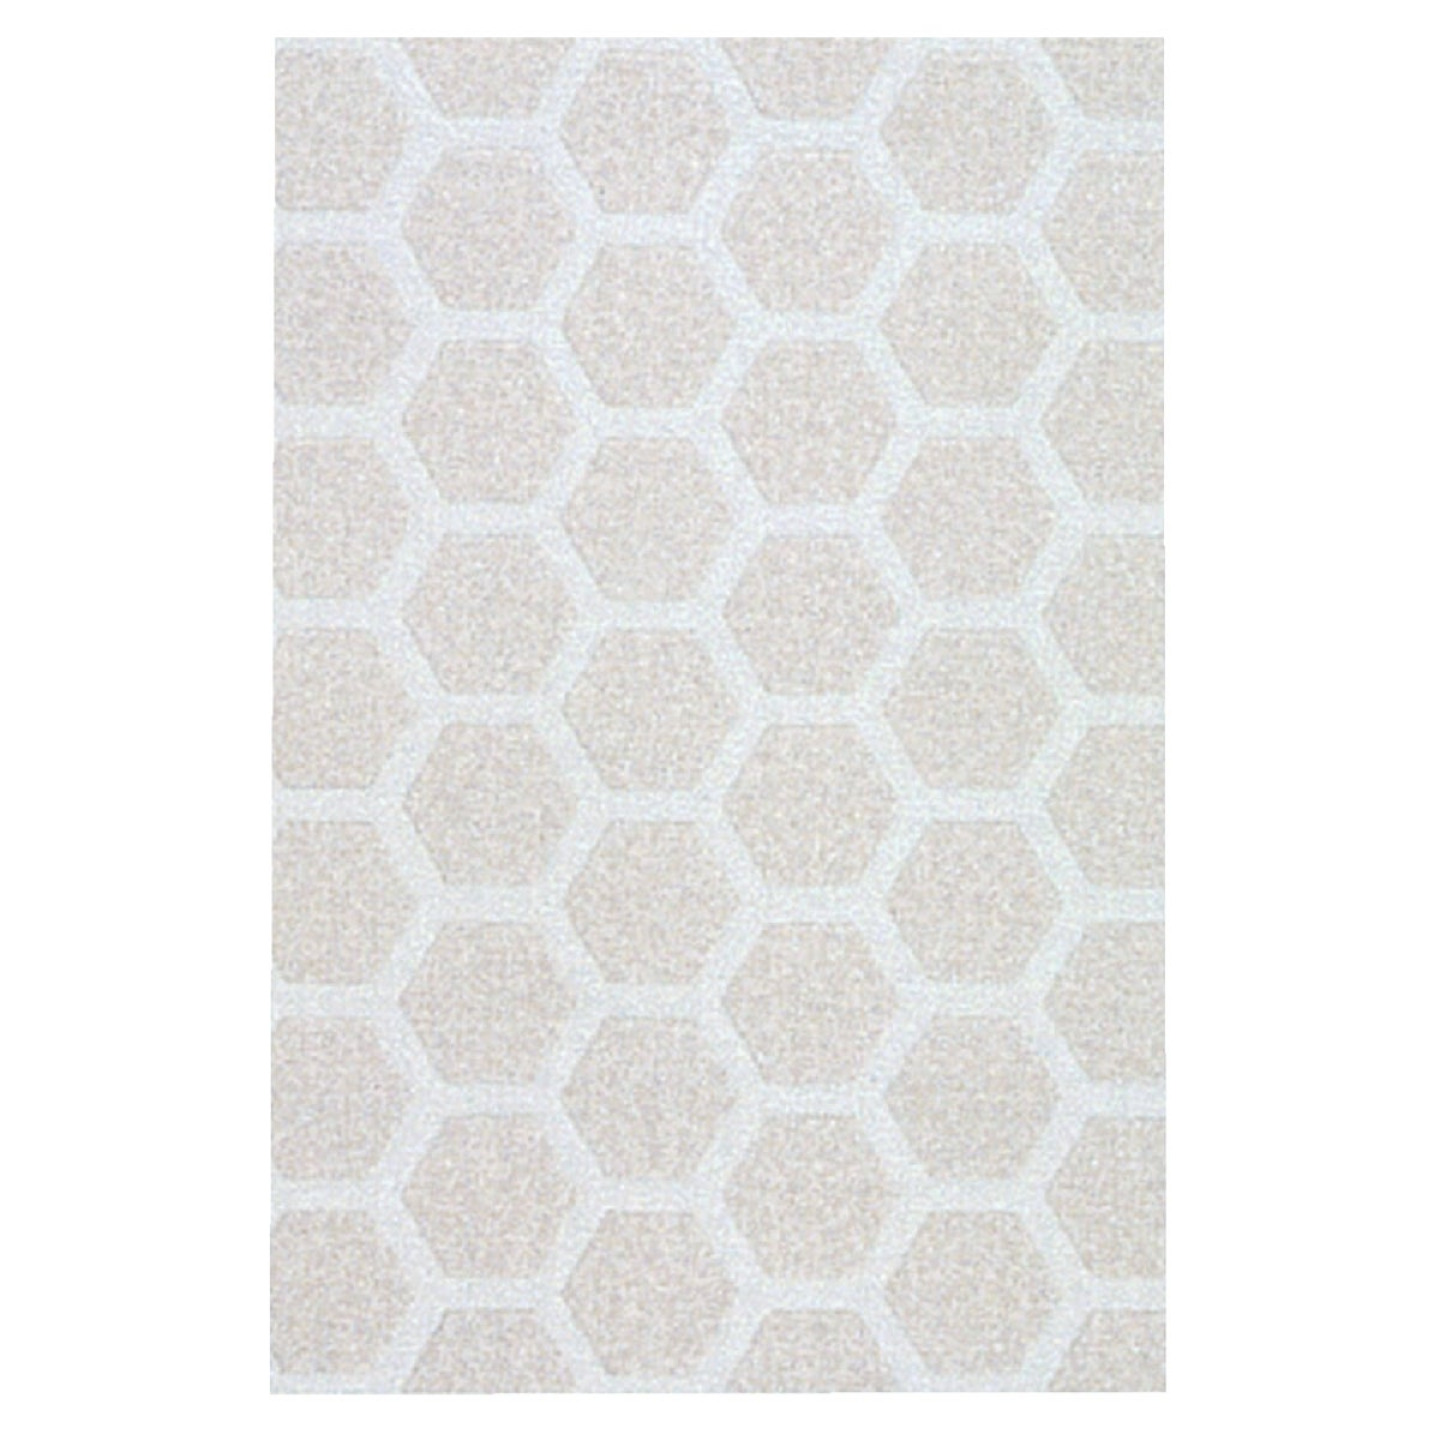 Natco 6 Ft. x 8 Ft. Vinyl Floor Covering Image 1